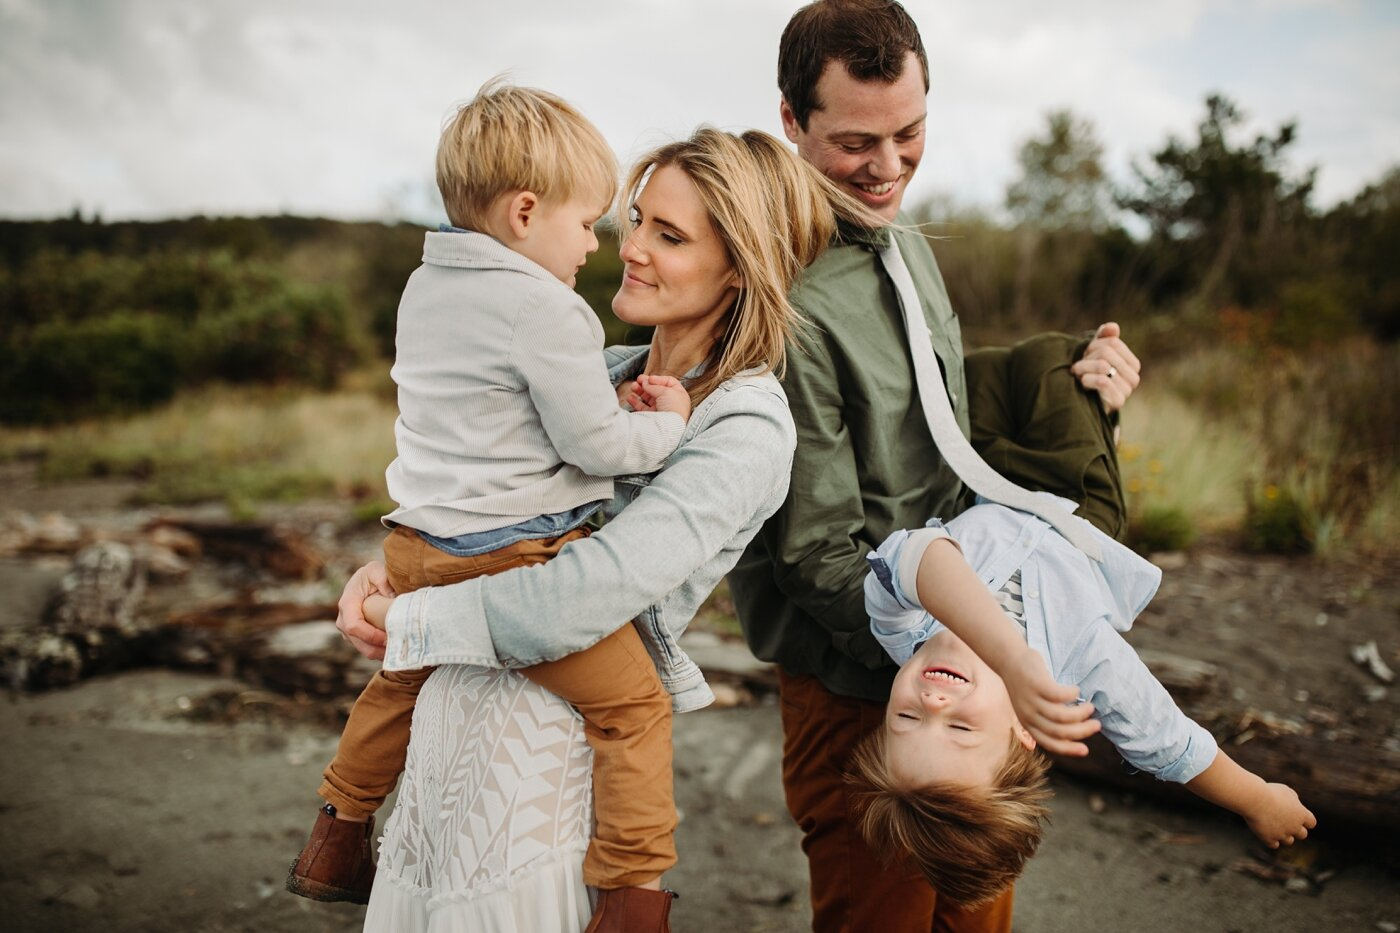 seattle-family-lifestyle-fall-photographer-discovery-park_0236.jpg